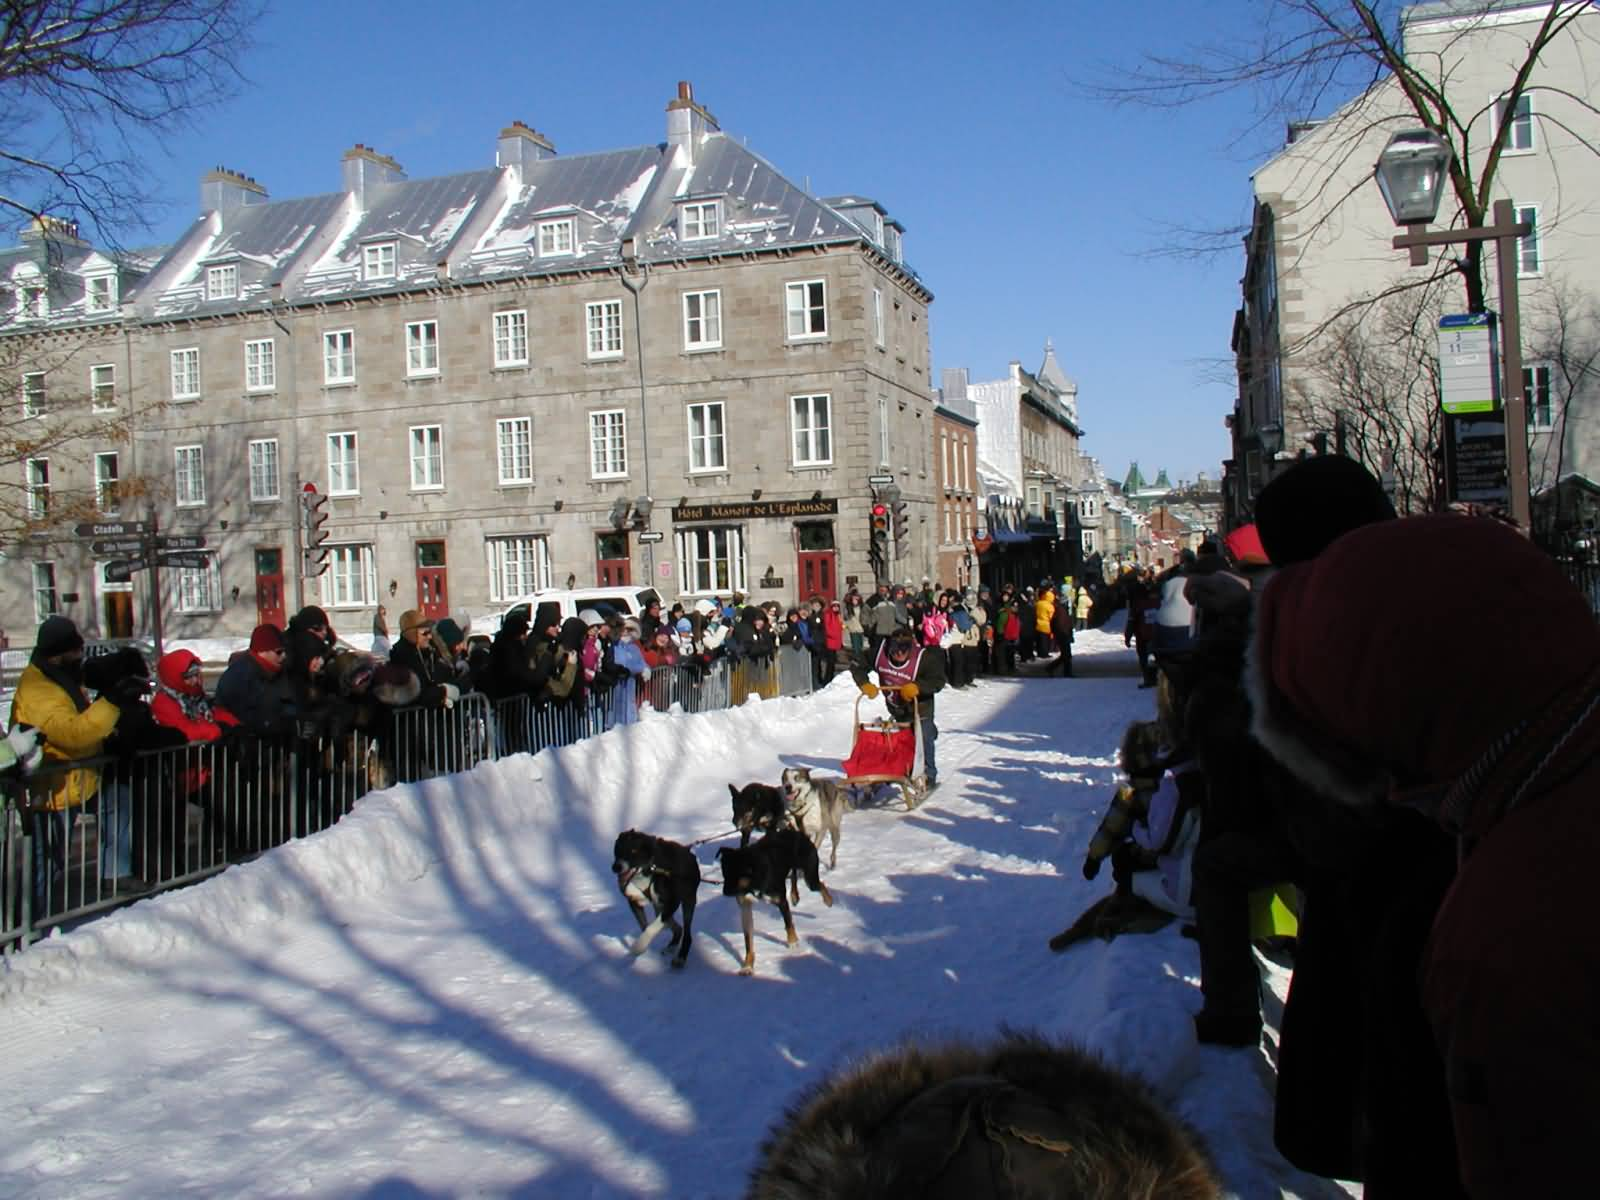 an essay on the quebec winter carnival Winter carnival essays and research papers winter essay now embracing winter warmly winter is a weather reality for most of us who live in north america.